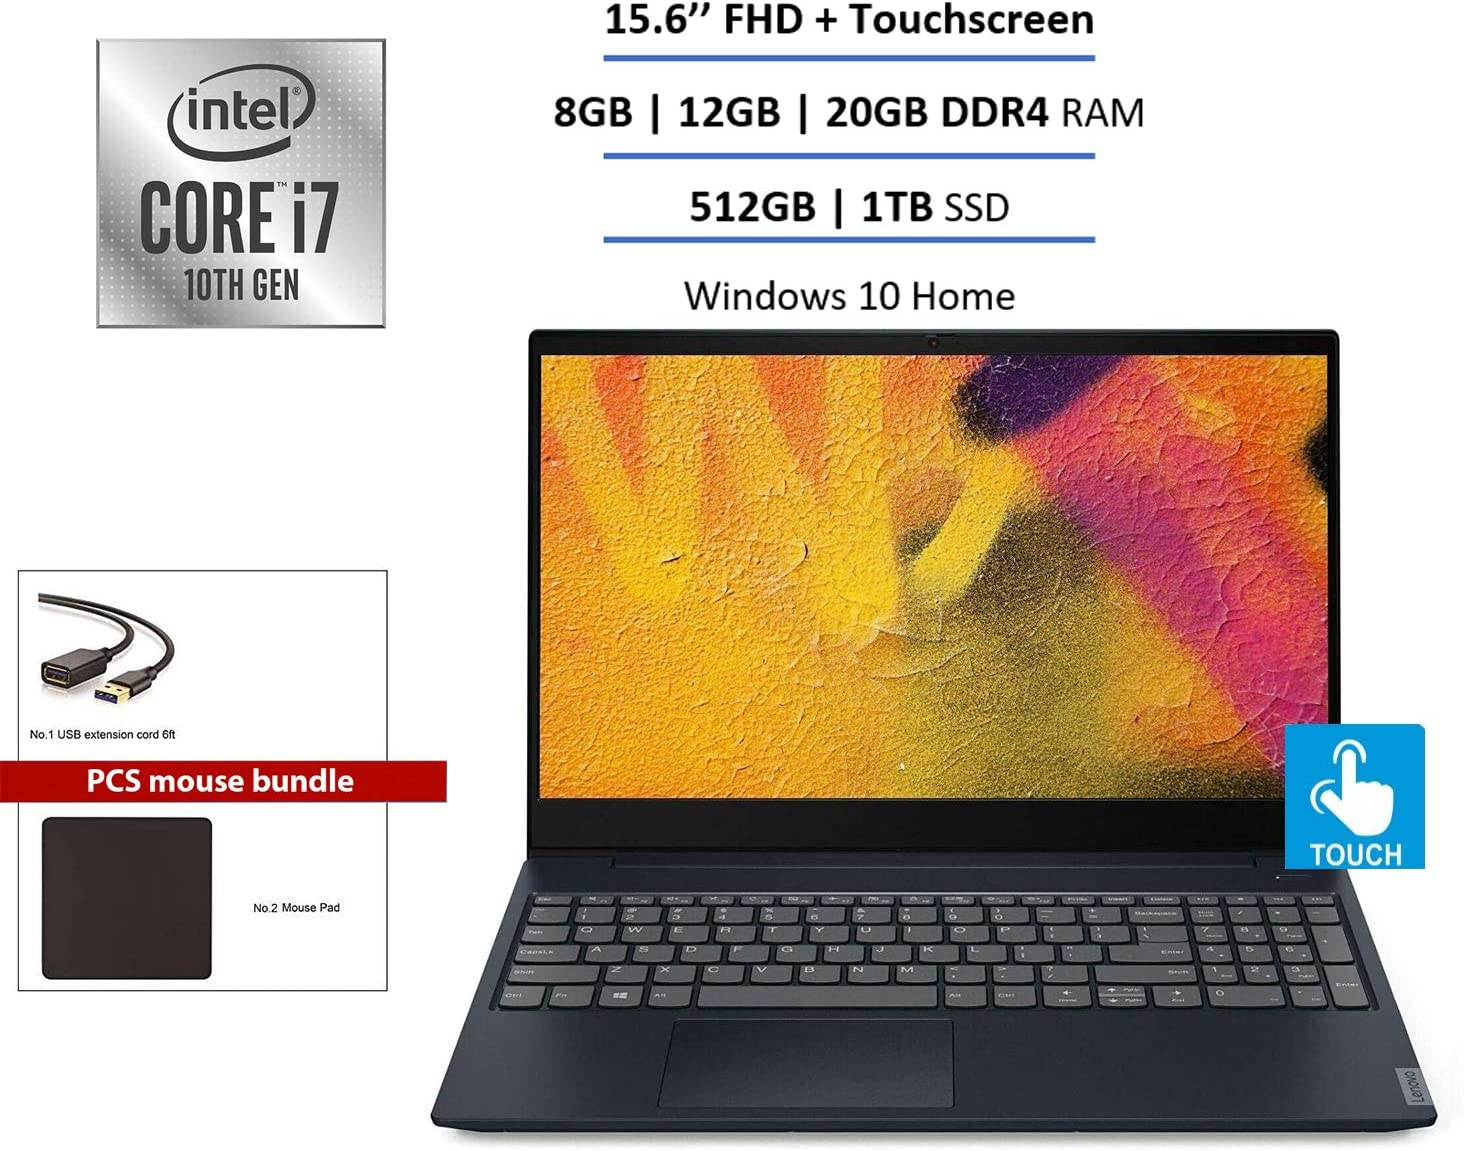 "2020 Lenovo Ideapad S340 15.6"" FHD Touchscreen Laptop Computer, 10th Gen Intel Quard-Core i7-1065G7, 12GB DDR4, 512GB PCIe SSD, Backlit Keyboard, Windows 10 + PCS Store Mouse Bundle Accessories"